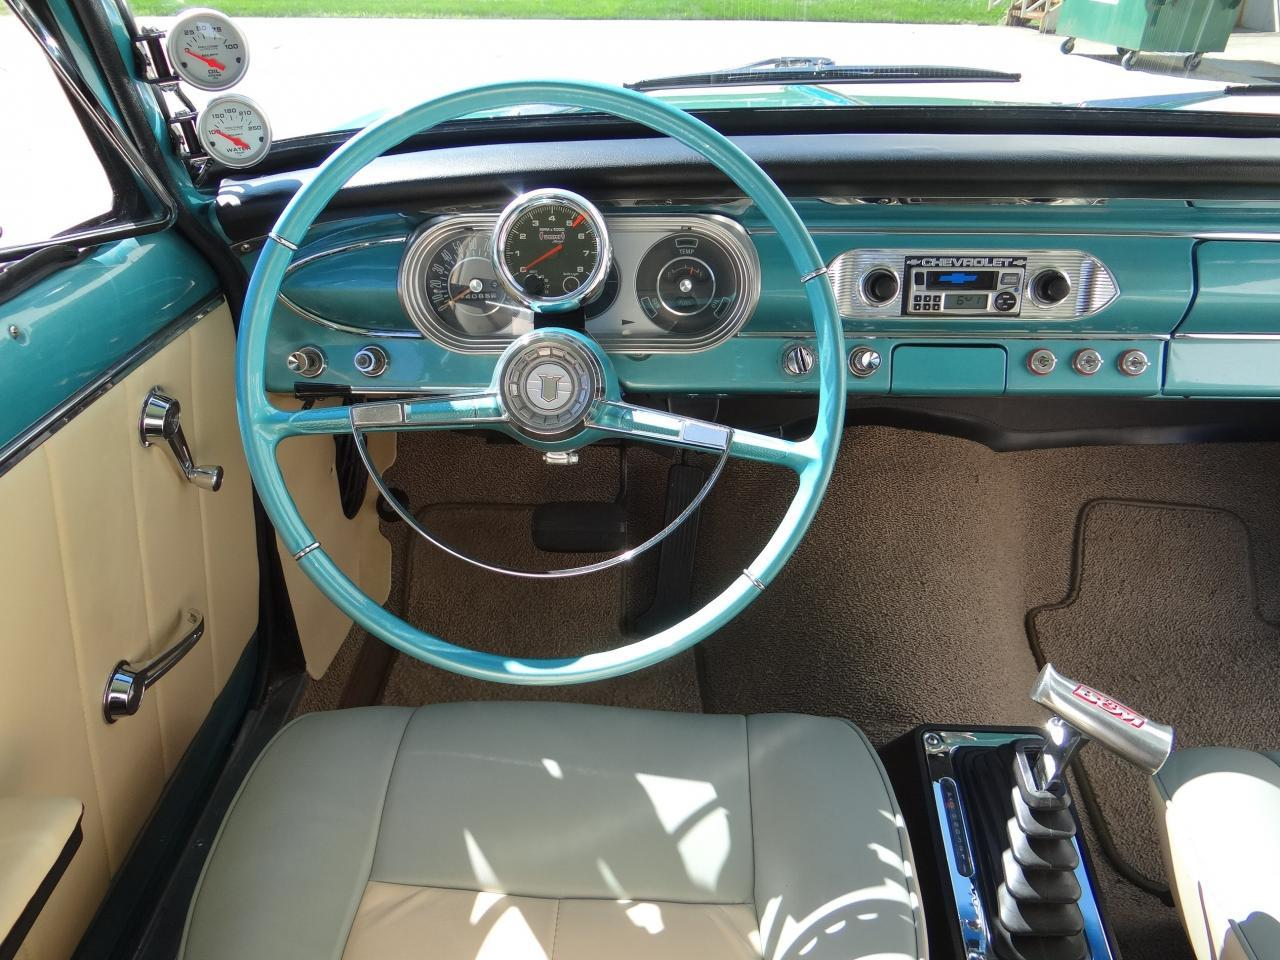 Large Picture of '64 Chevrolet Nova located in Indianapolis Indiana - $23,995.00 Offered by Gateway Classic Cars - Indianapolis - KEDU